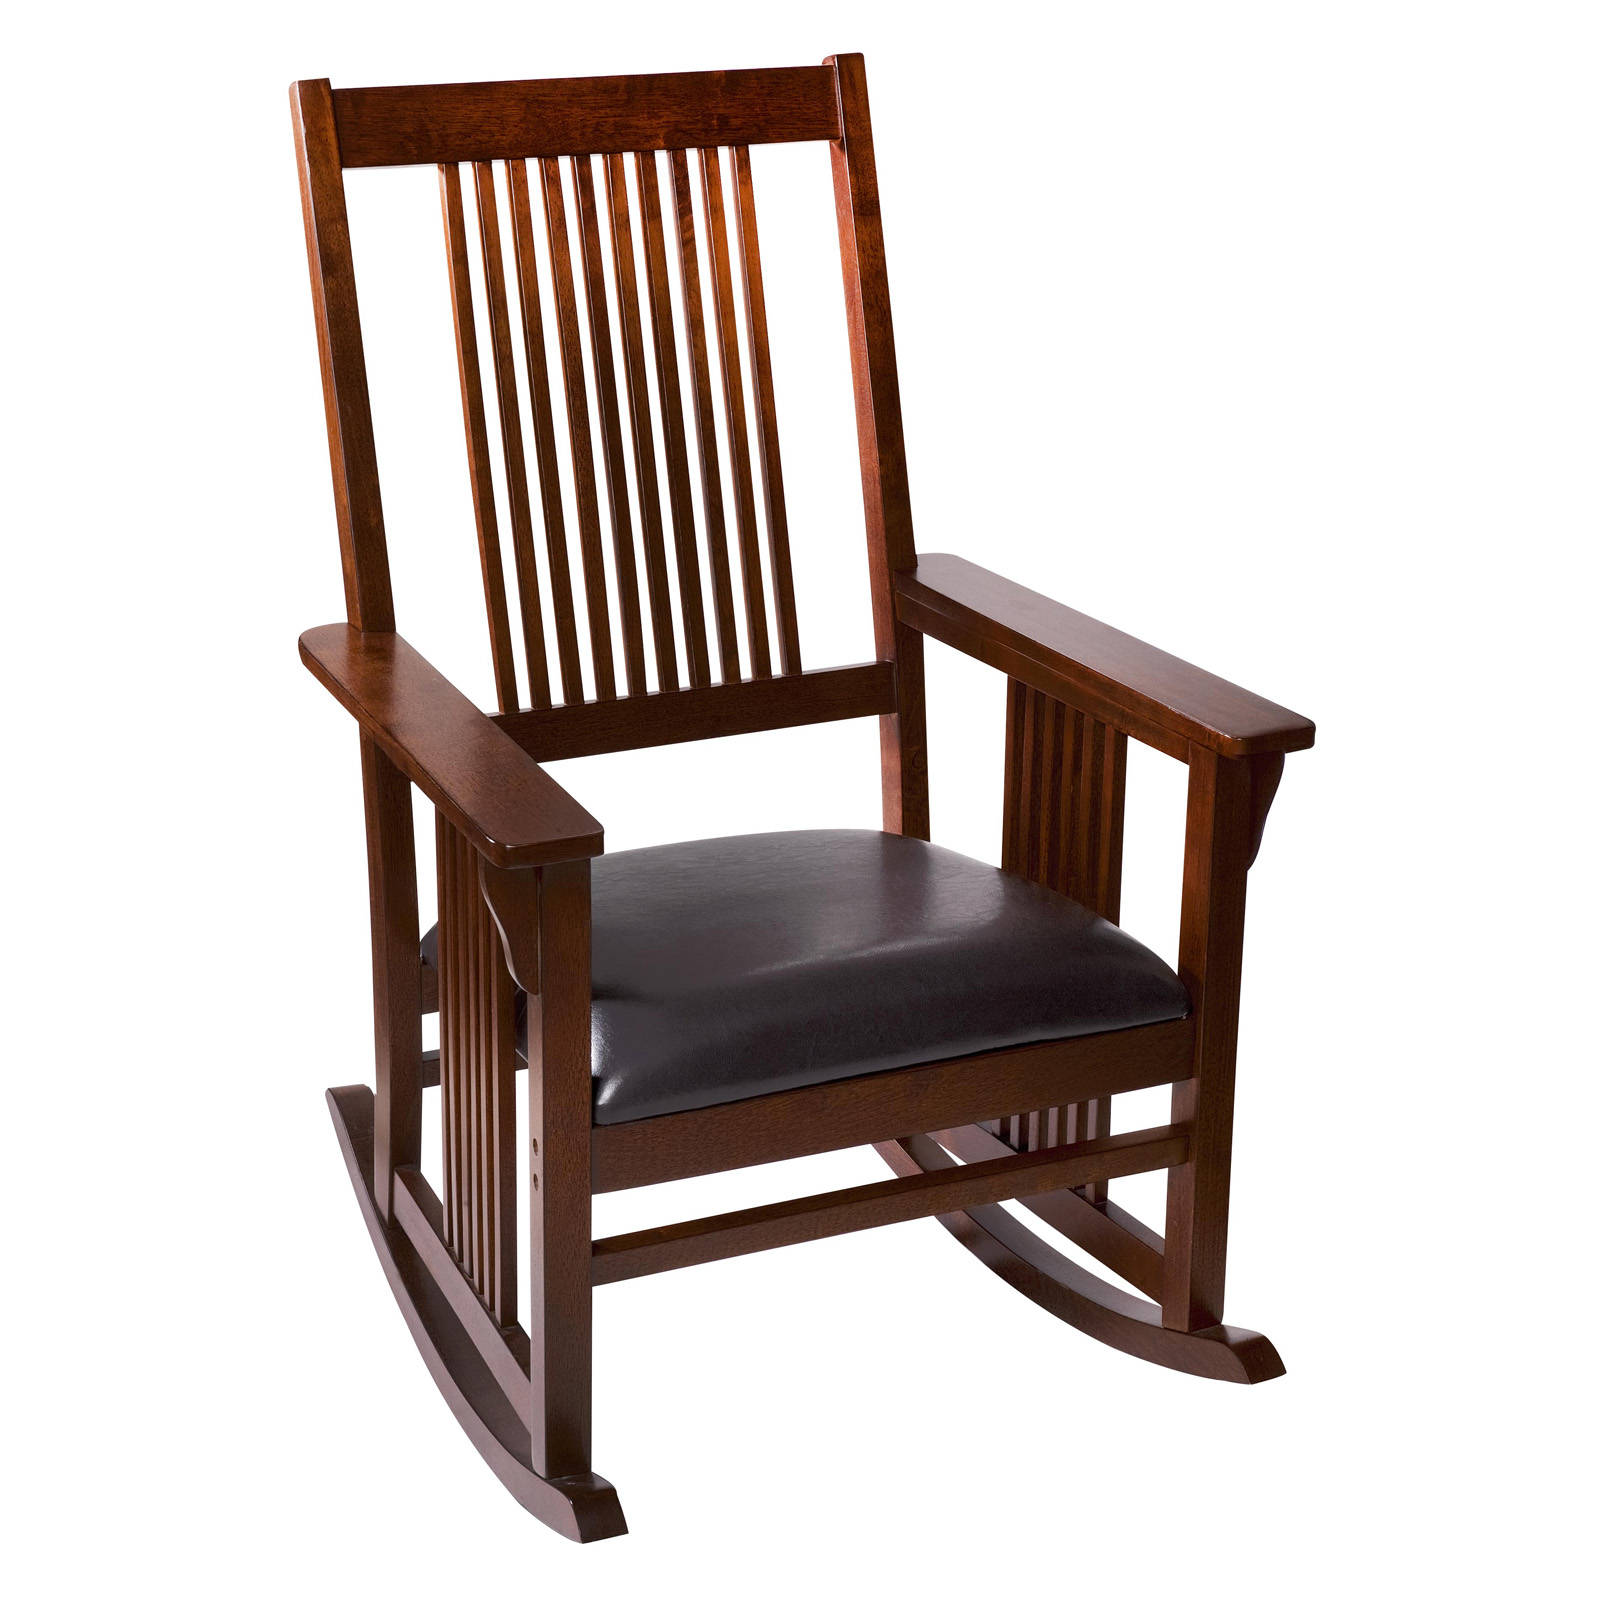 Gift Mark Mission Style Wooden Rocking Chair With Upholstered Seat |  Hayneedle